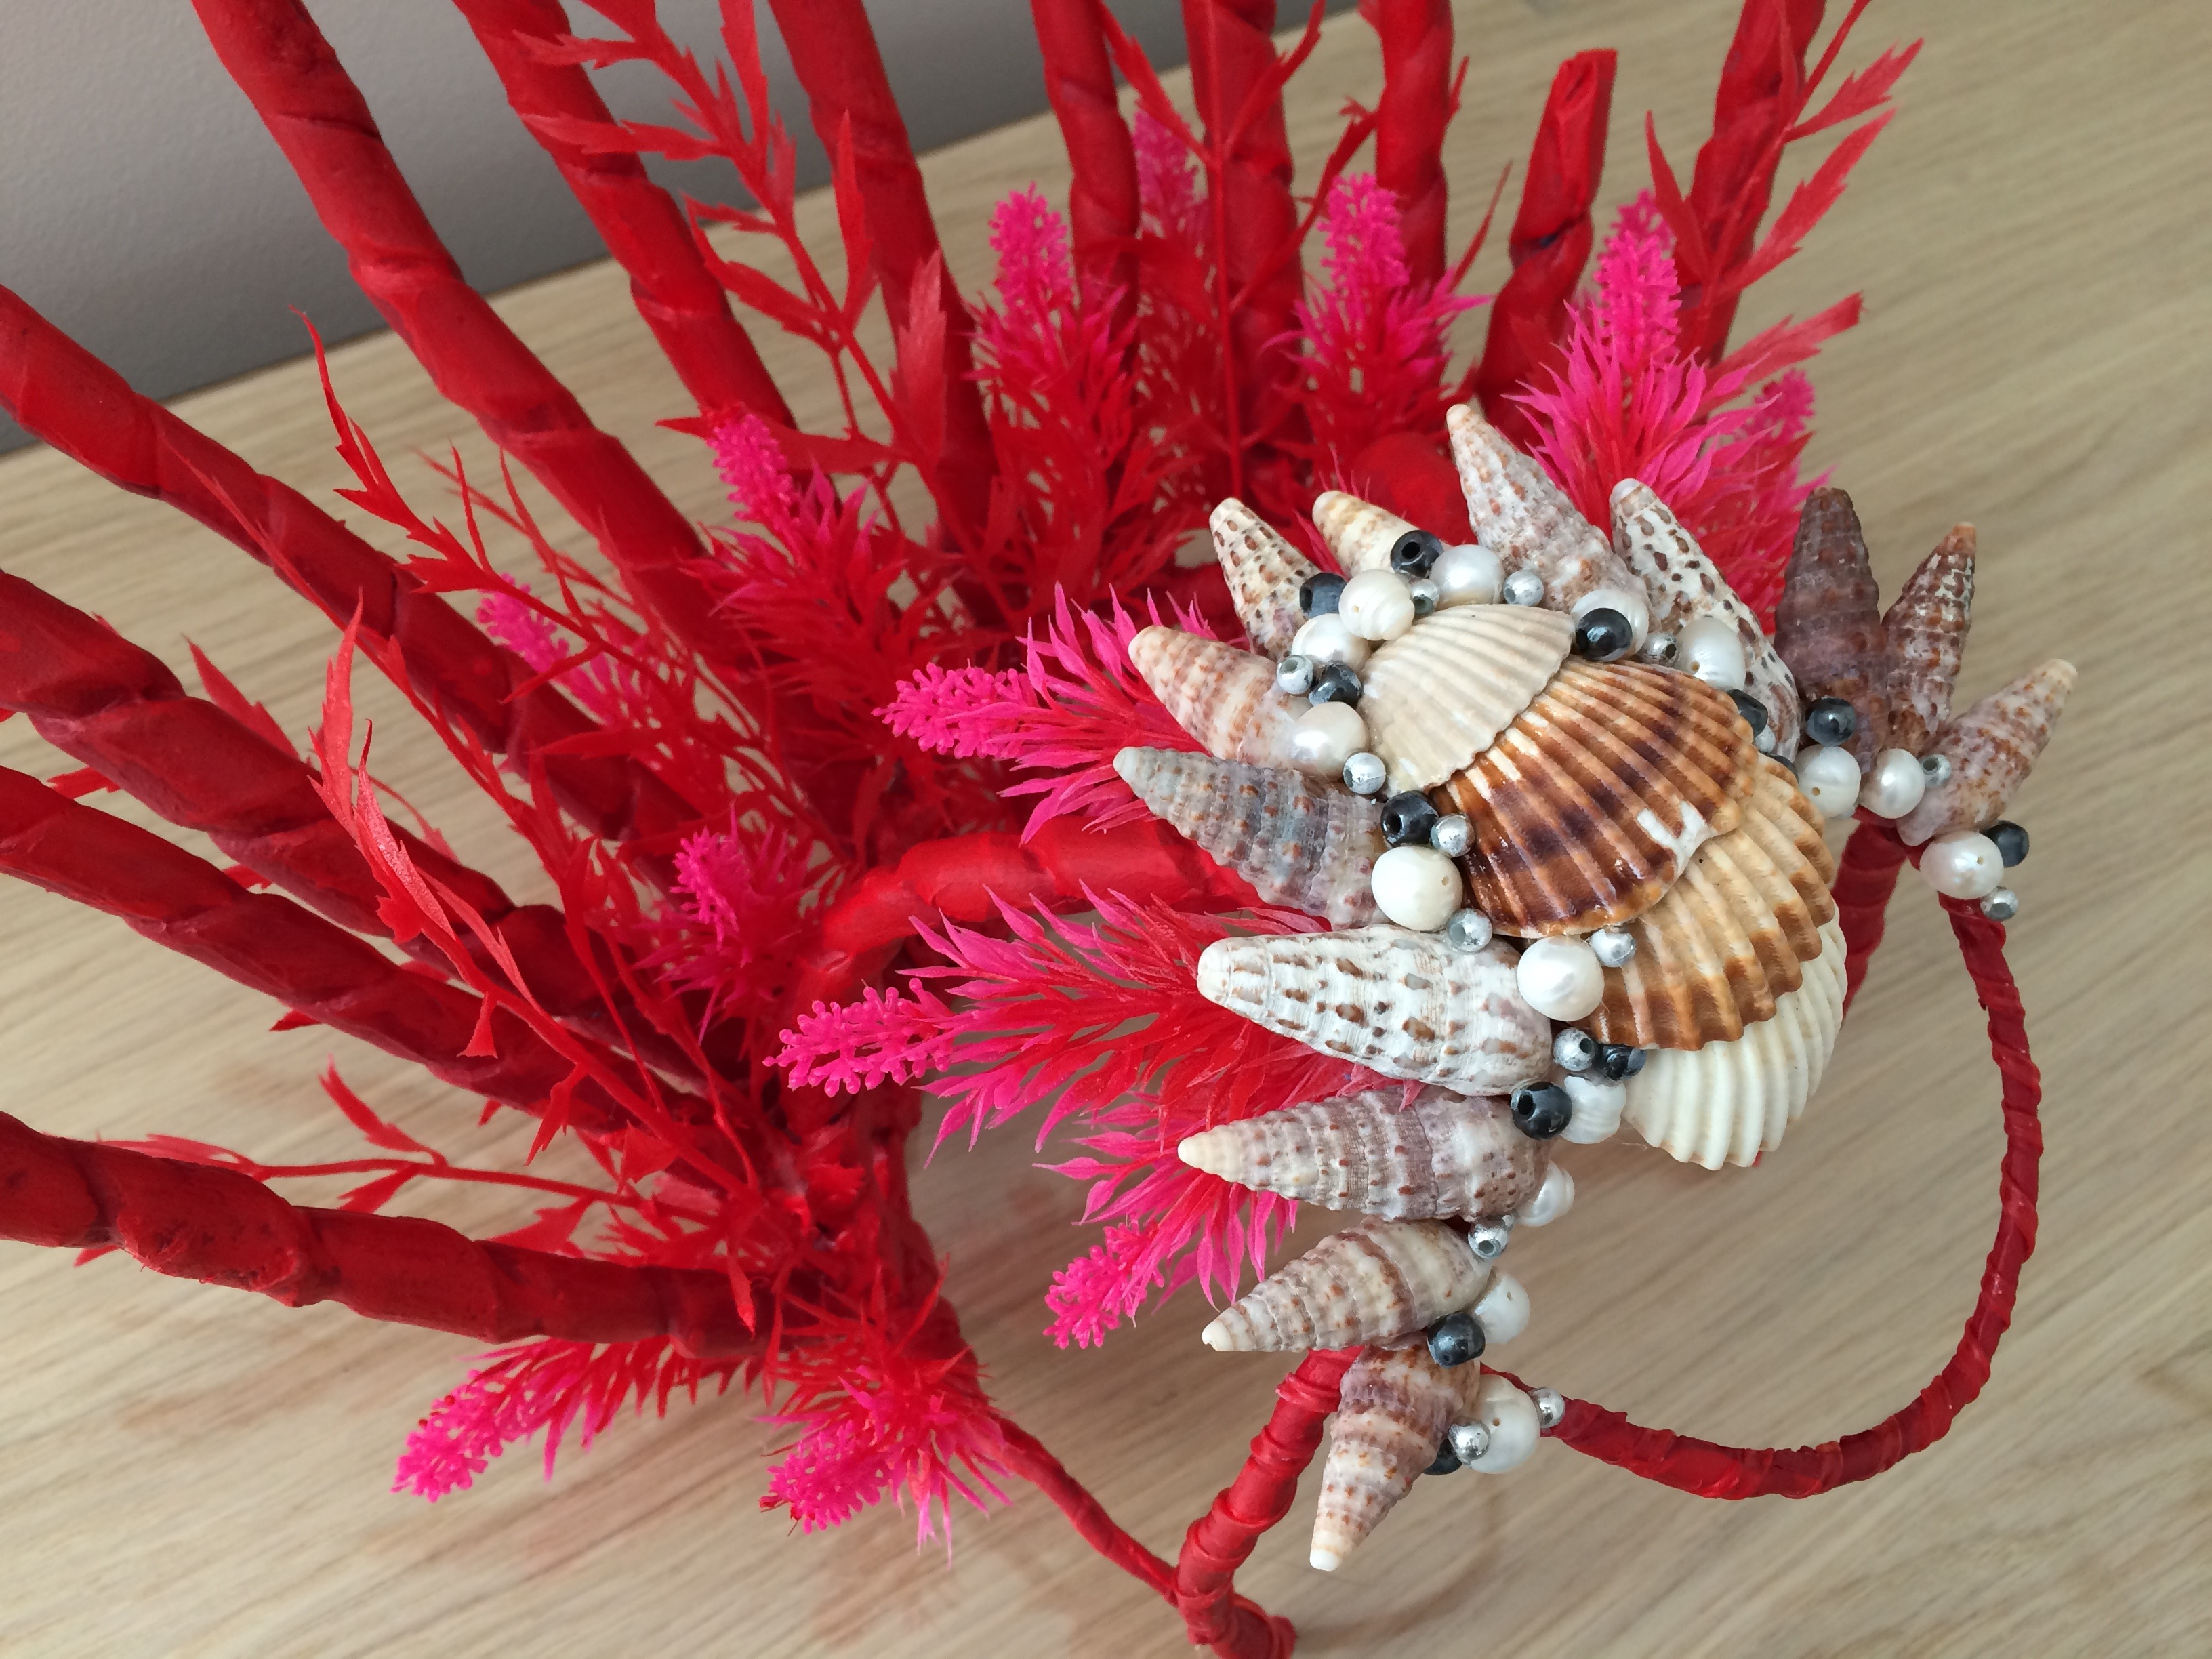 Red Mermaid Headdress